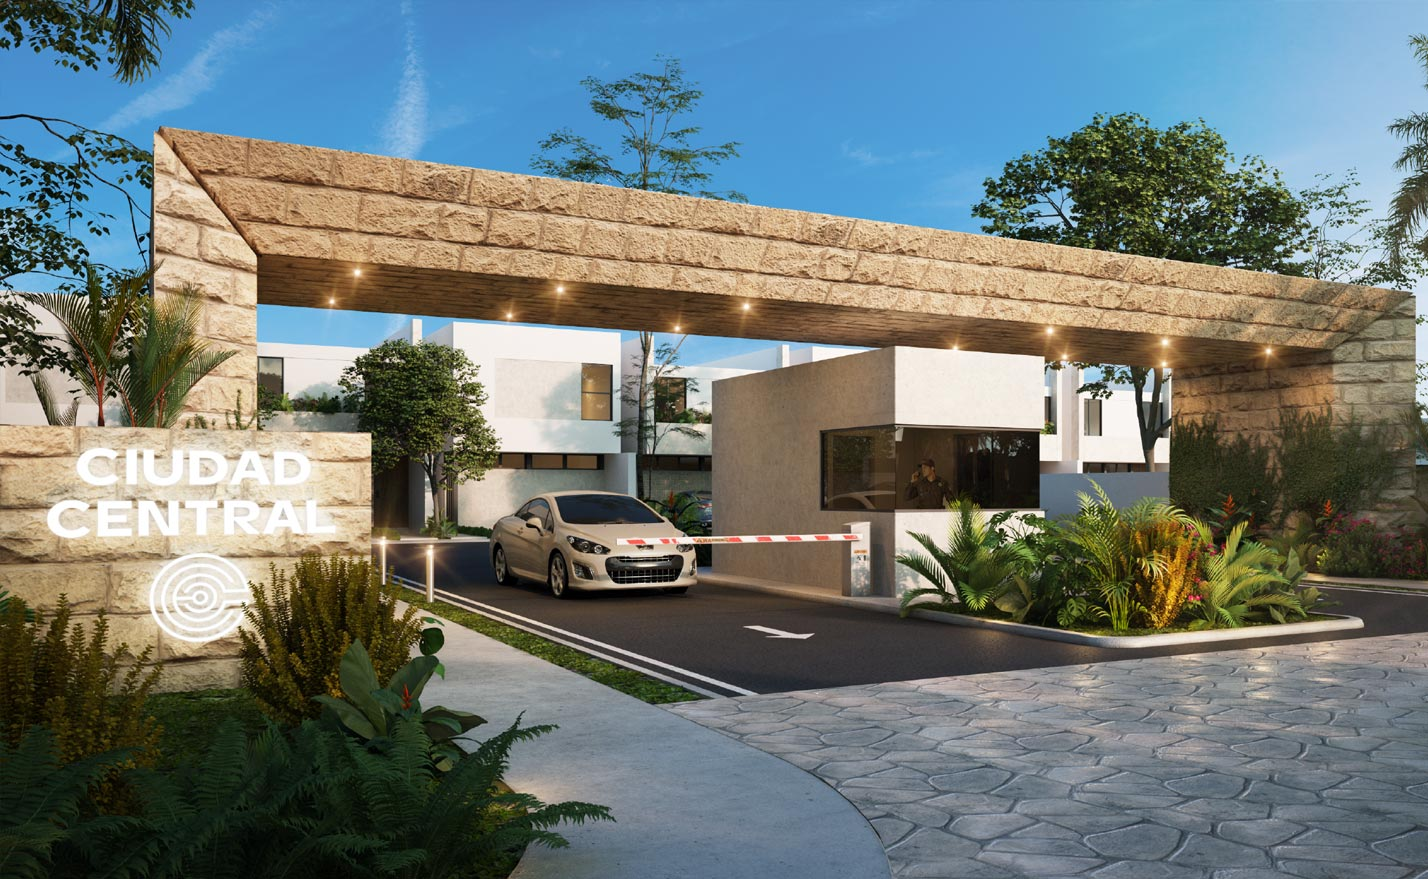 Ciudad Central Residential Lots For Sale